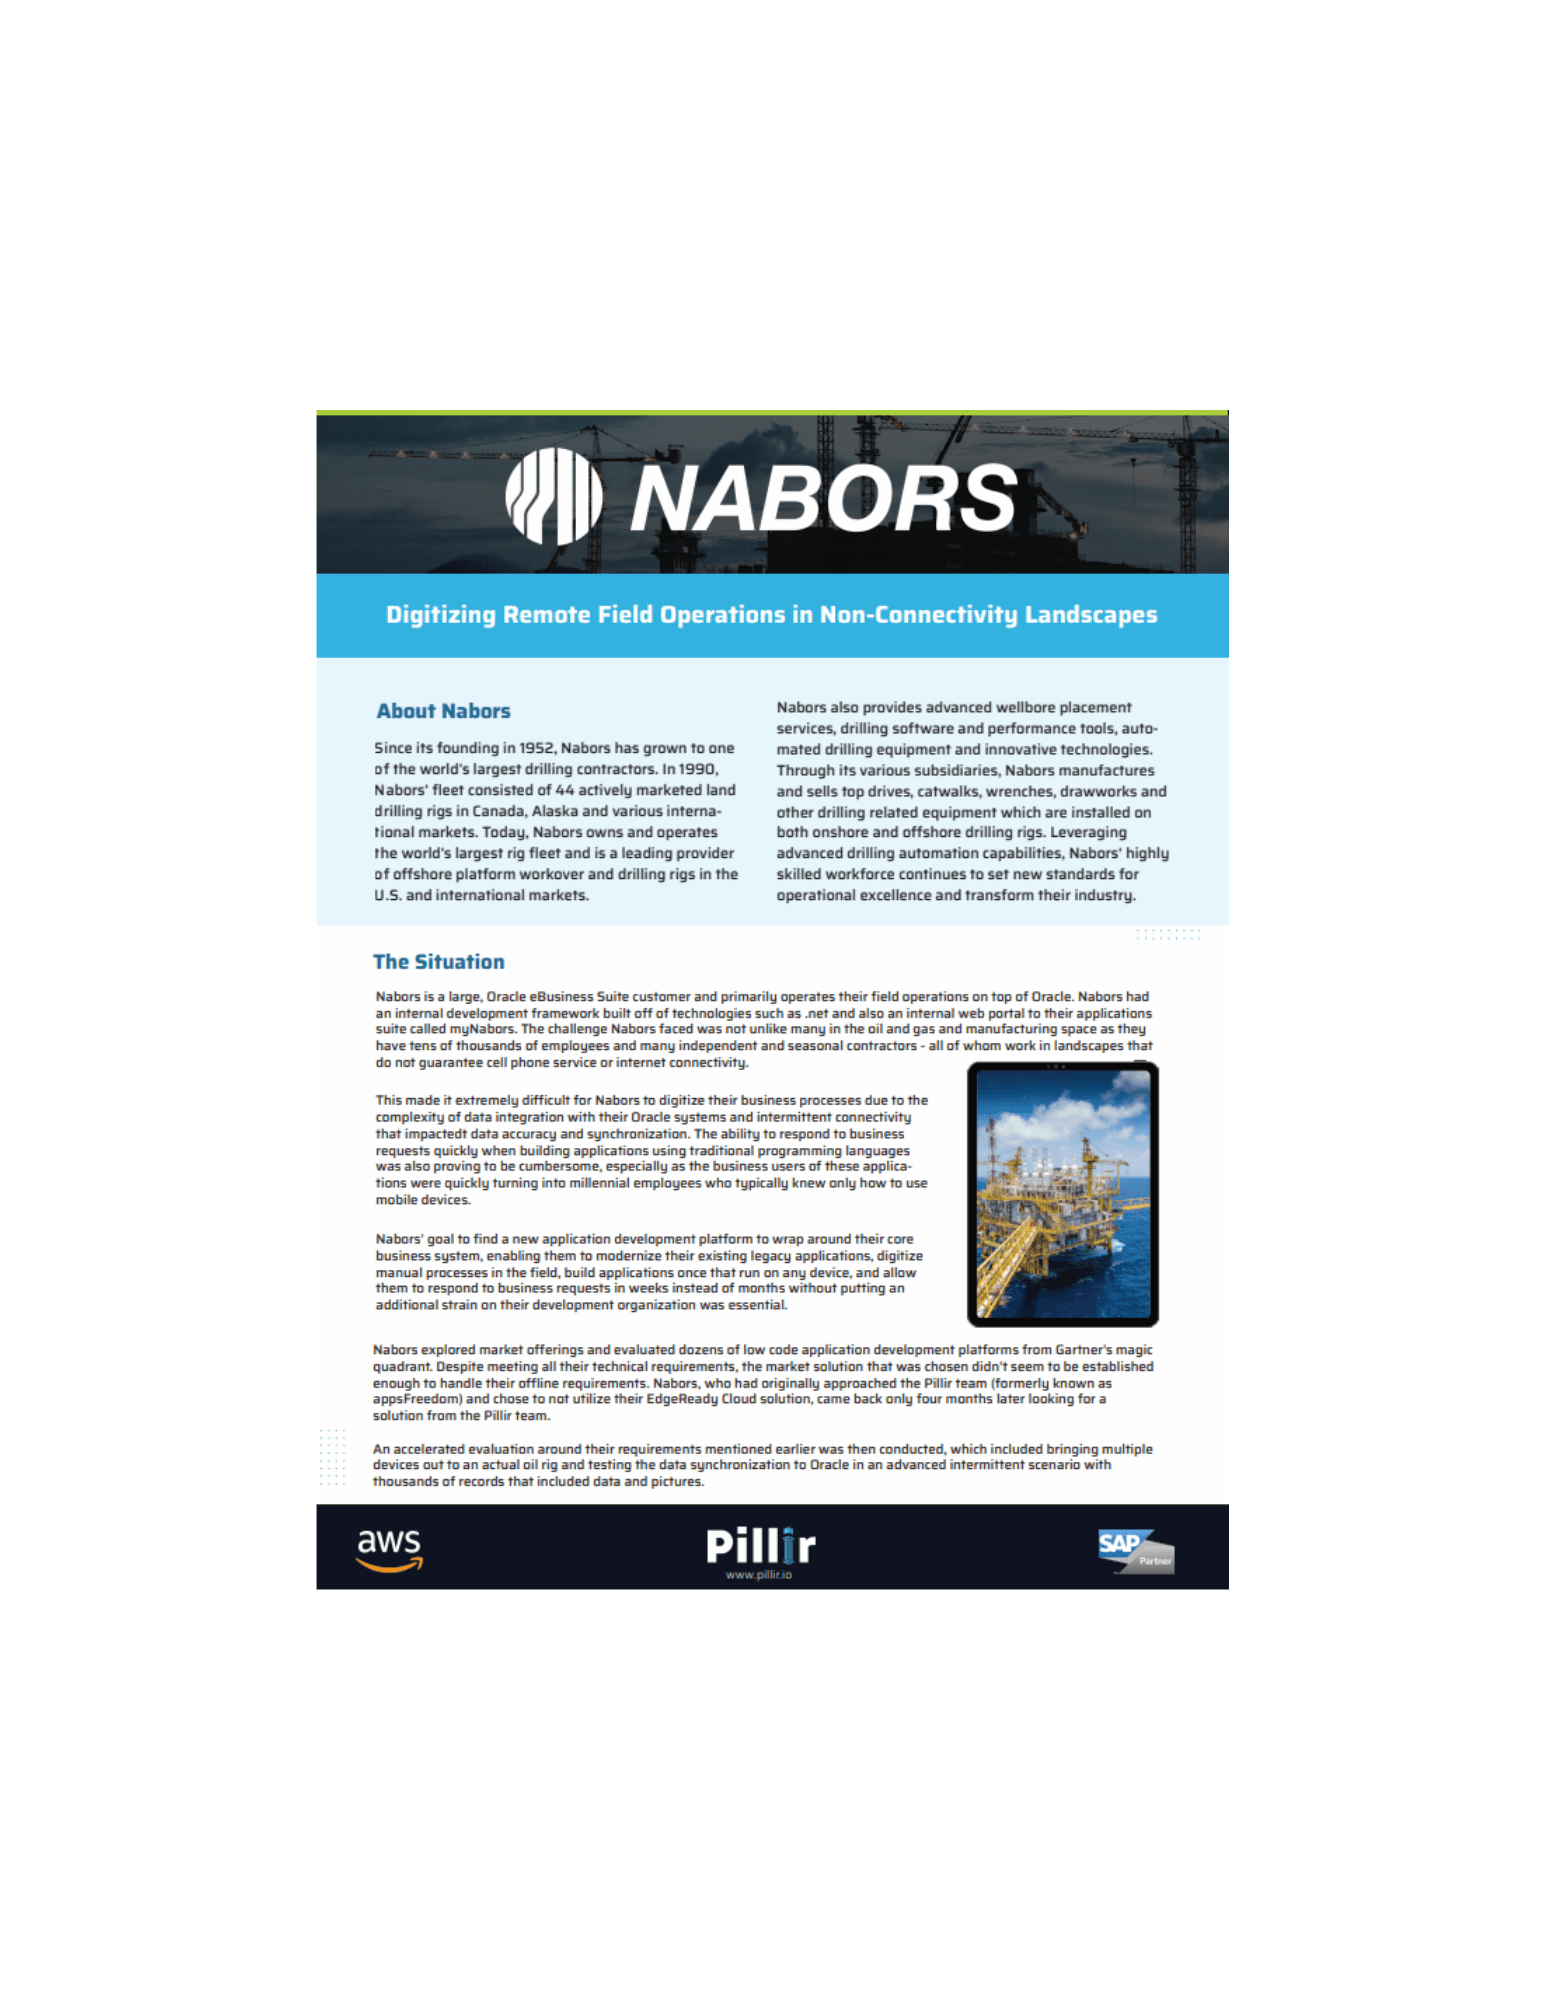 website_nabors_image